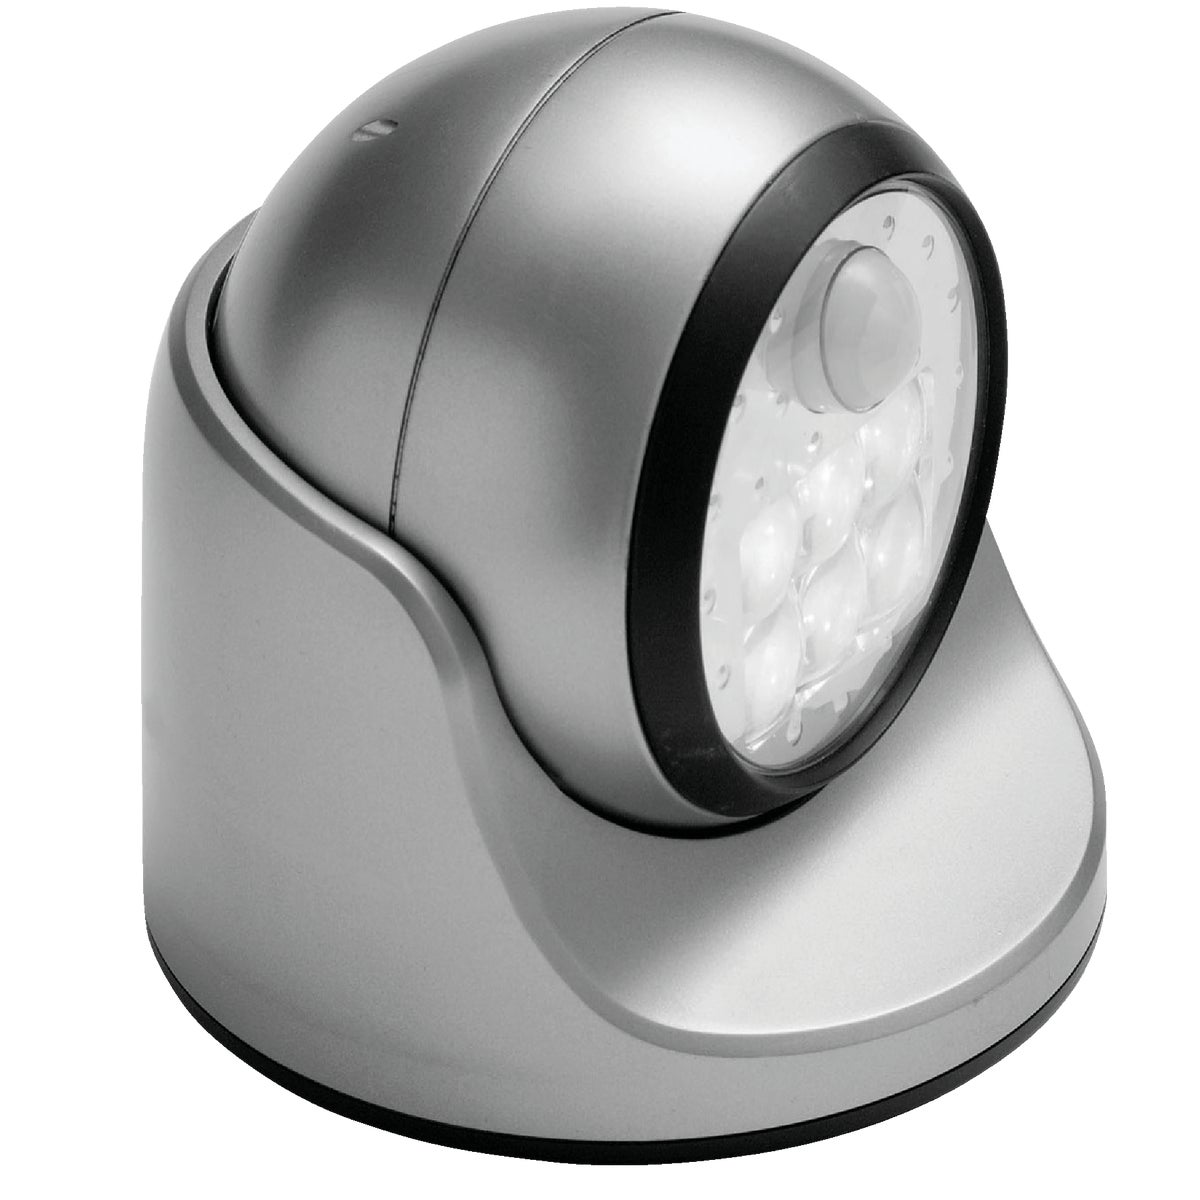 SILVER 6 LED PORCH LIGHT - 20031-101 by Fulcrum Products, Inc